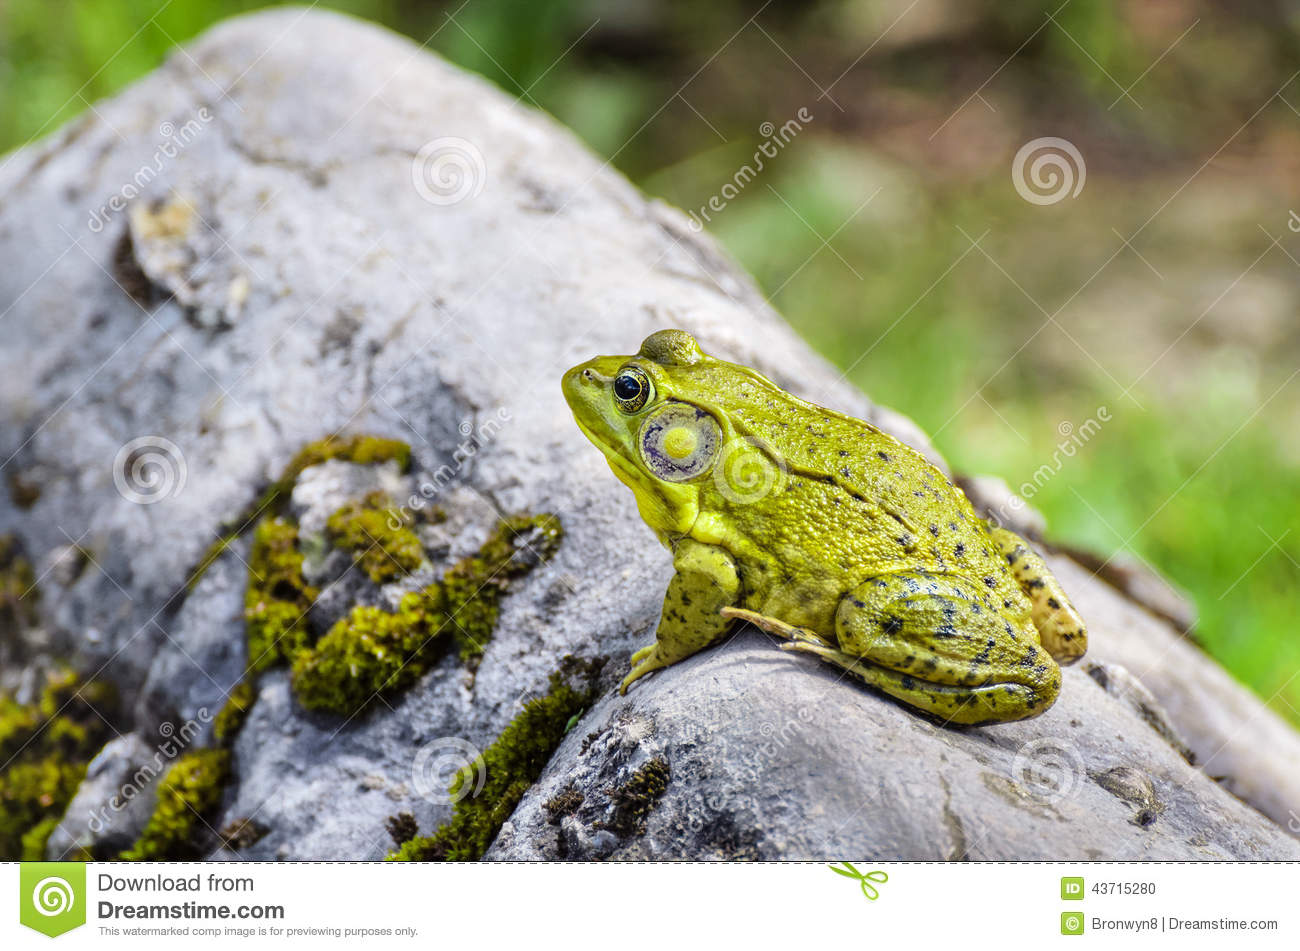 L Clamitans Frog on Rock stock pho...